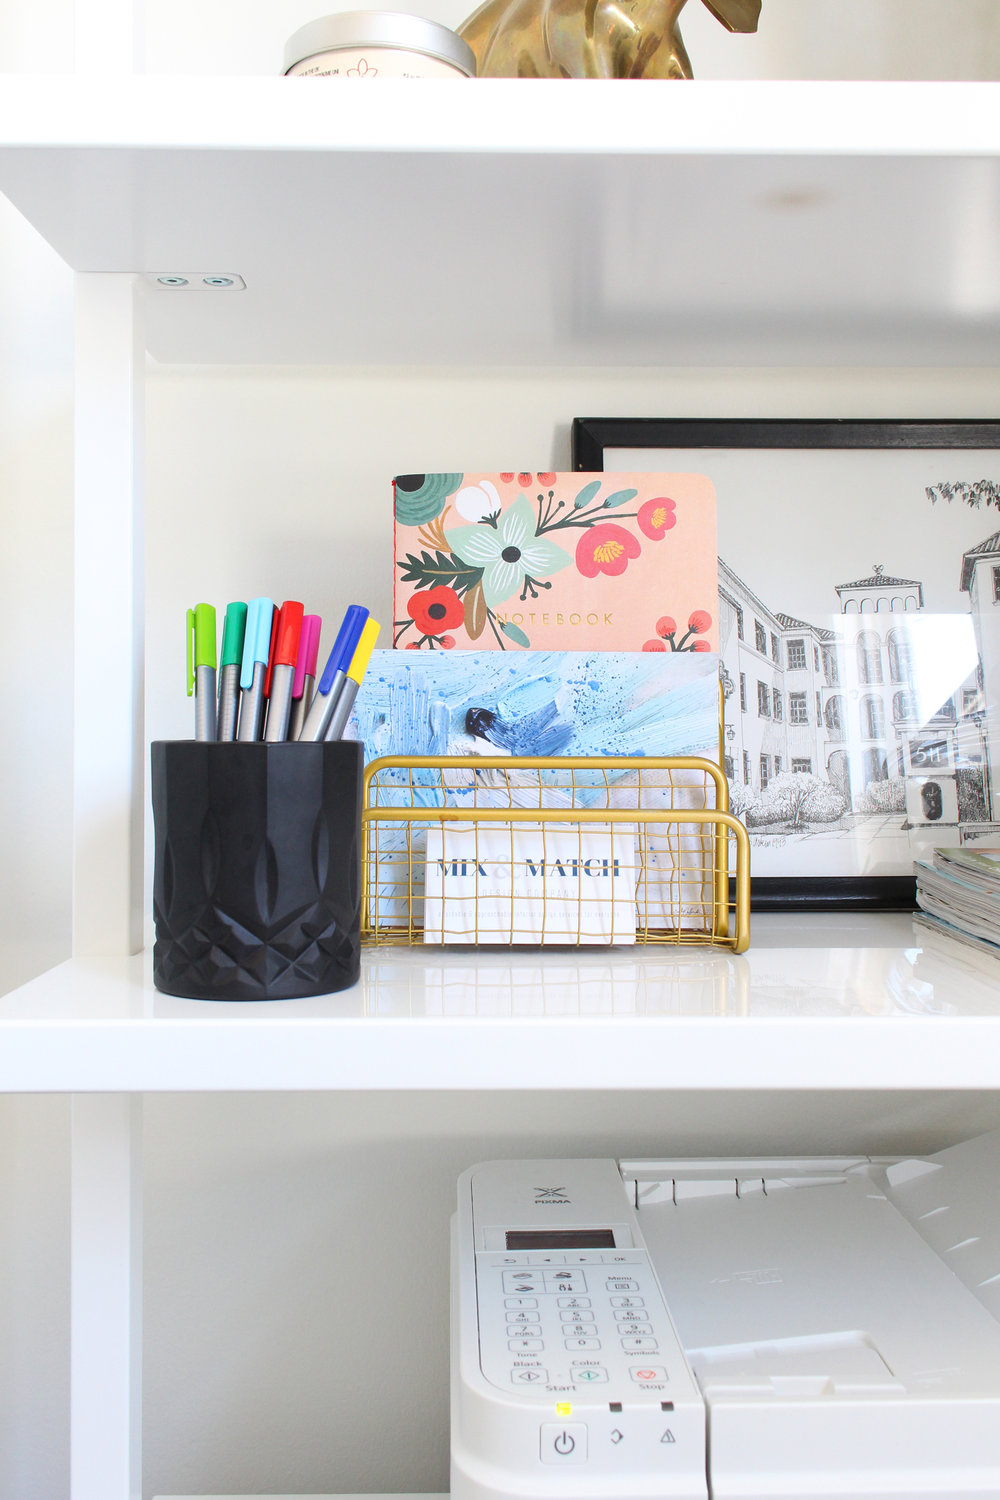 Office essentials and pretty pieces on bookshelf.